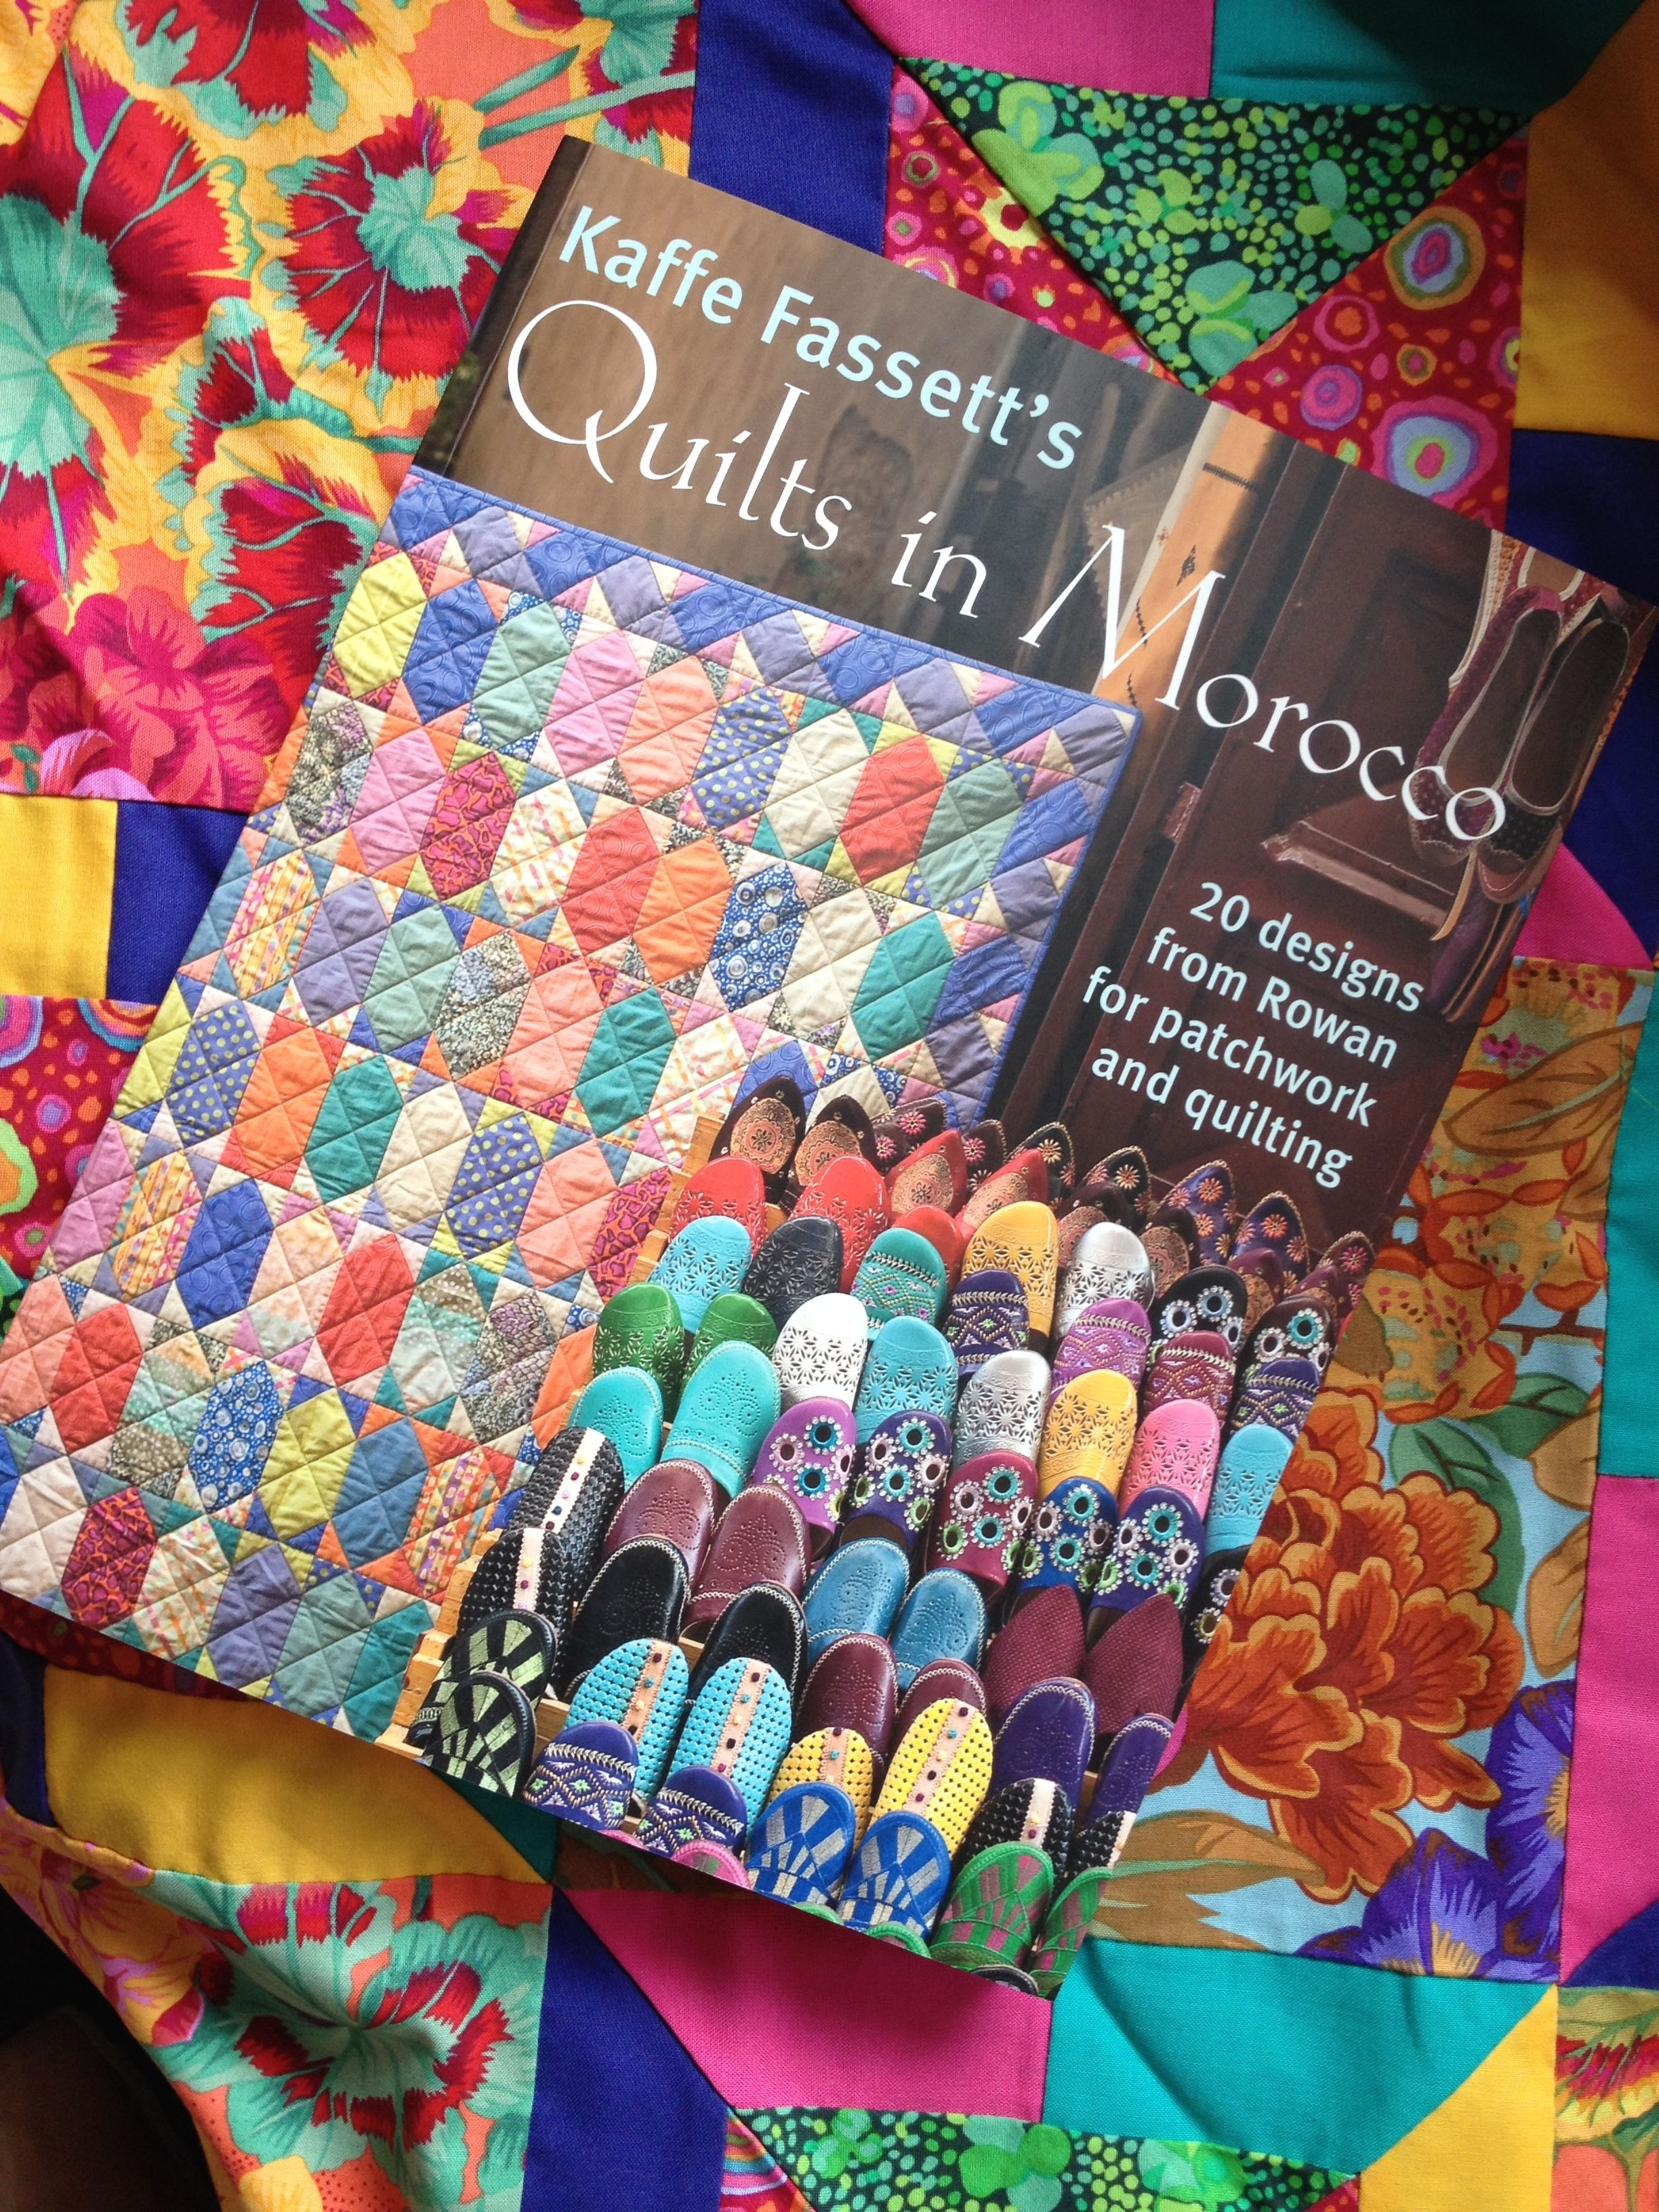 Kaffe Fassett Quilts In Morocco Real Men Stitch And Sew